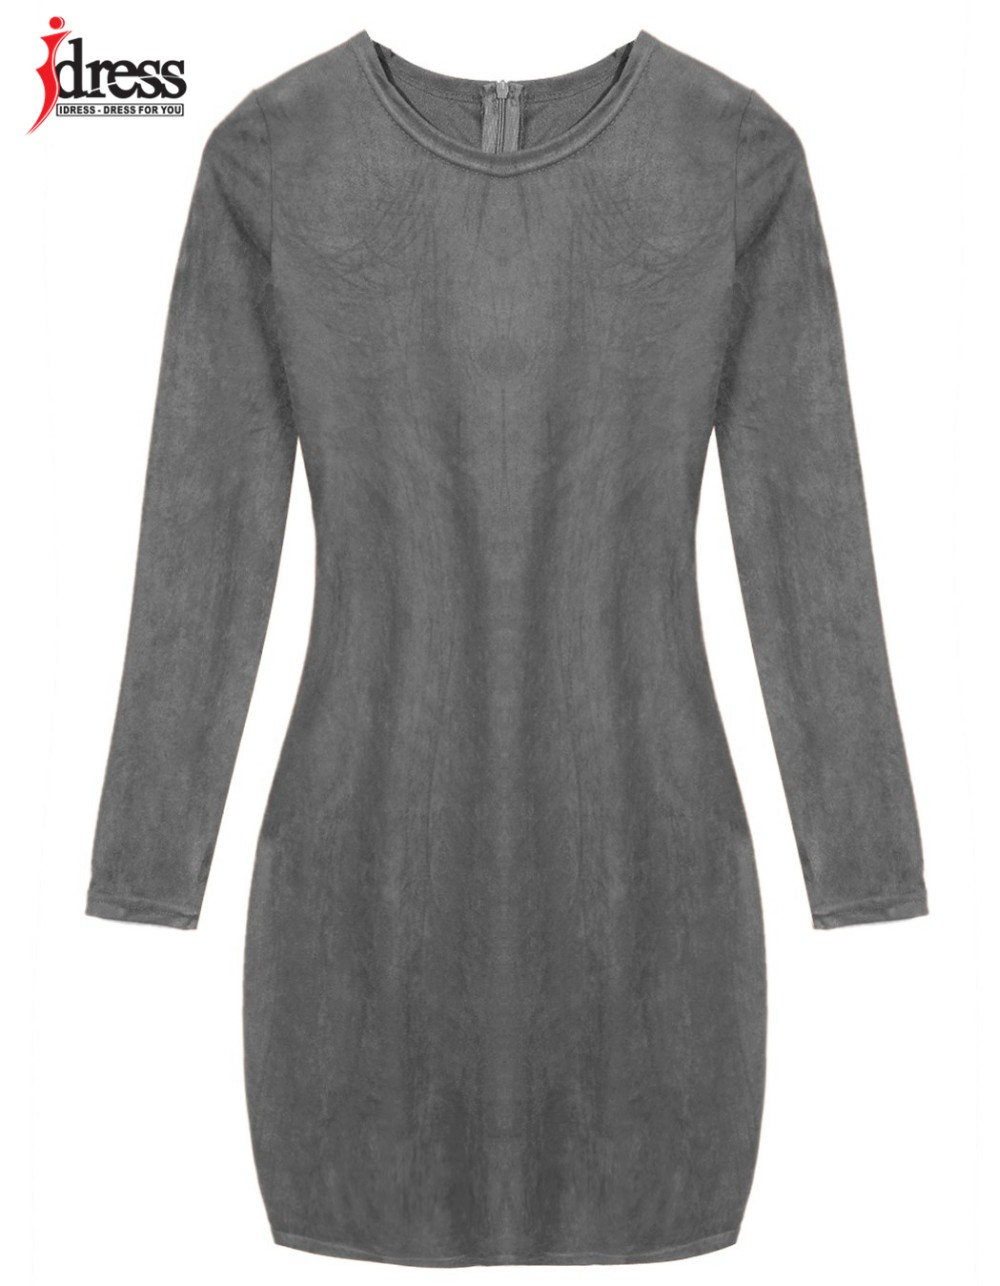 IDress 2016 Grey Brown Faux Suede Dress Bodycon Party Dresses Women Clothing Sexy Club Bandage Long Sleeve Autumn Dress Plus Size (6)